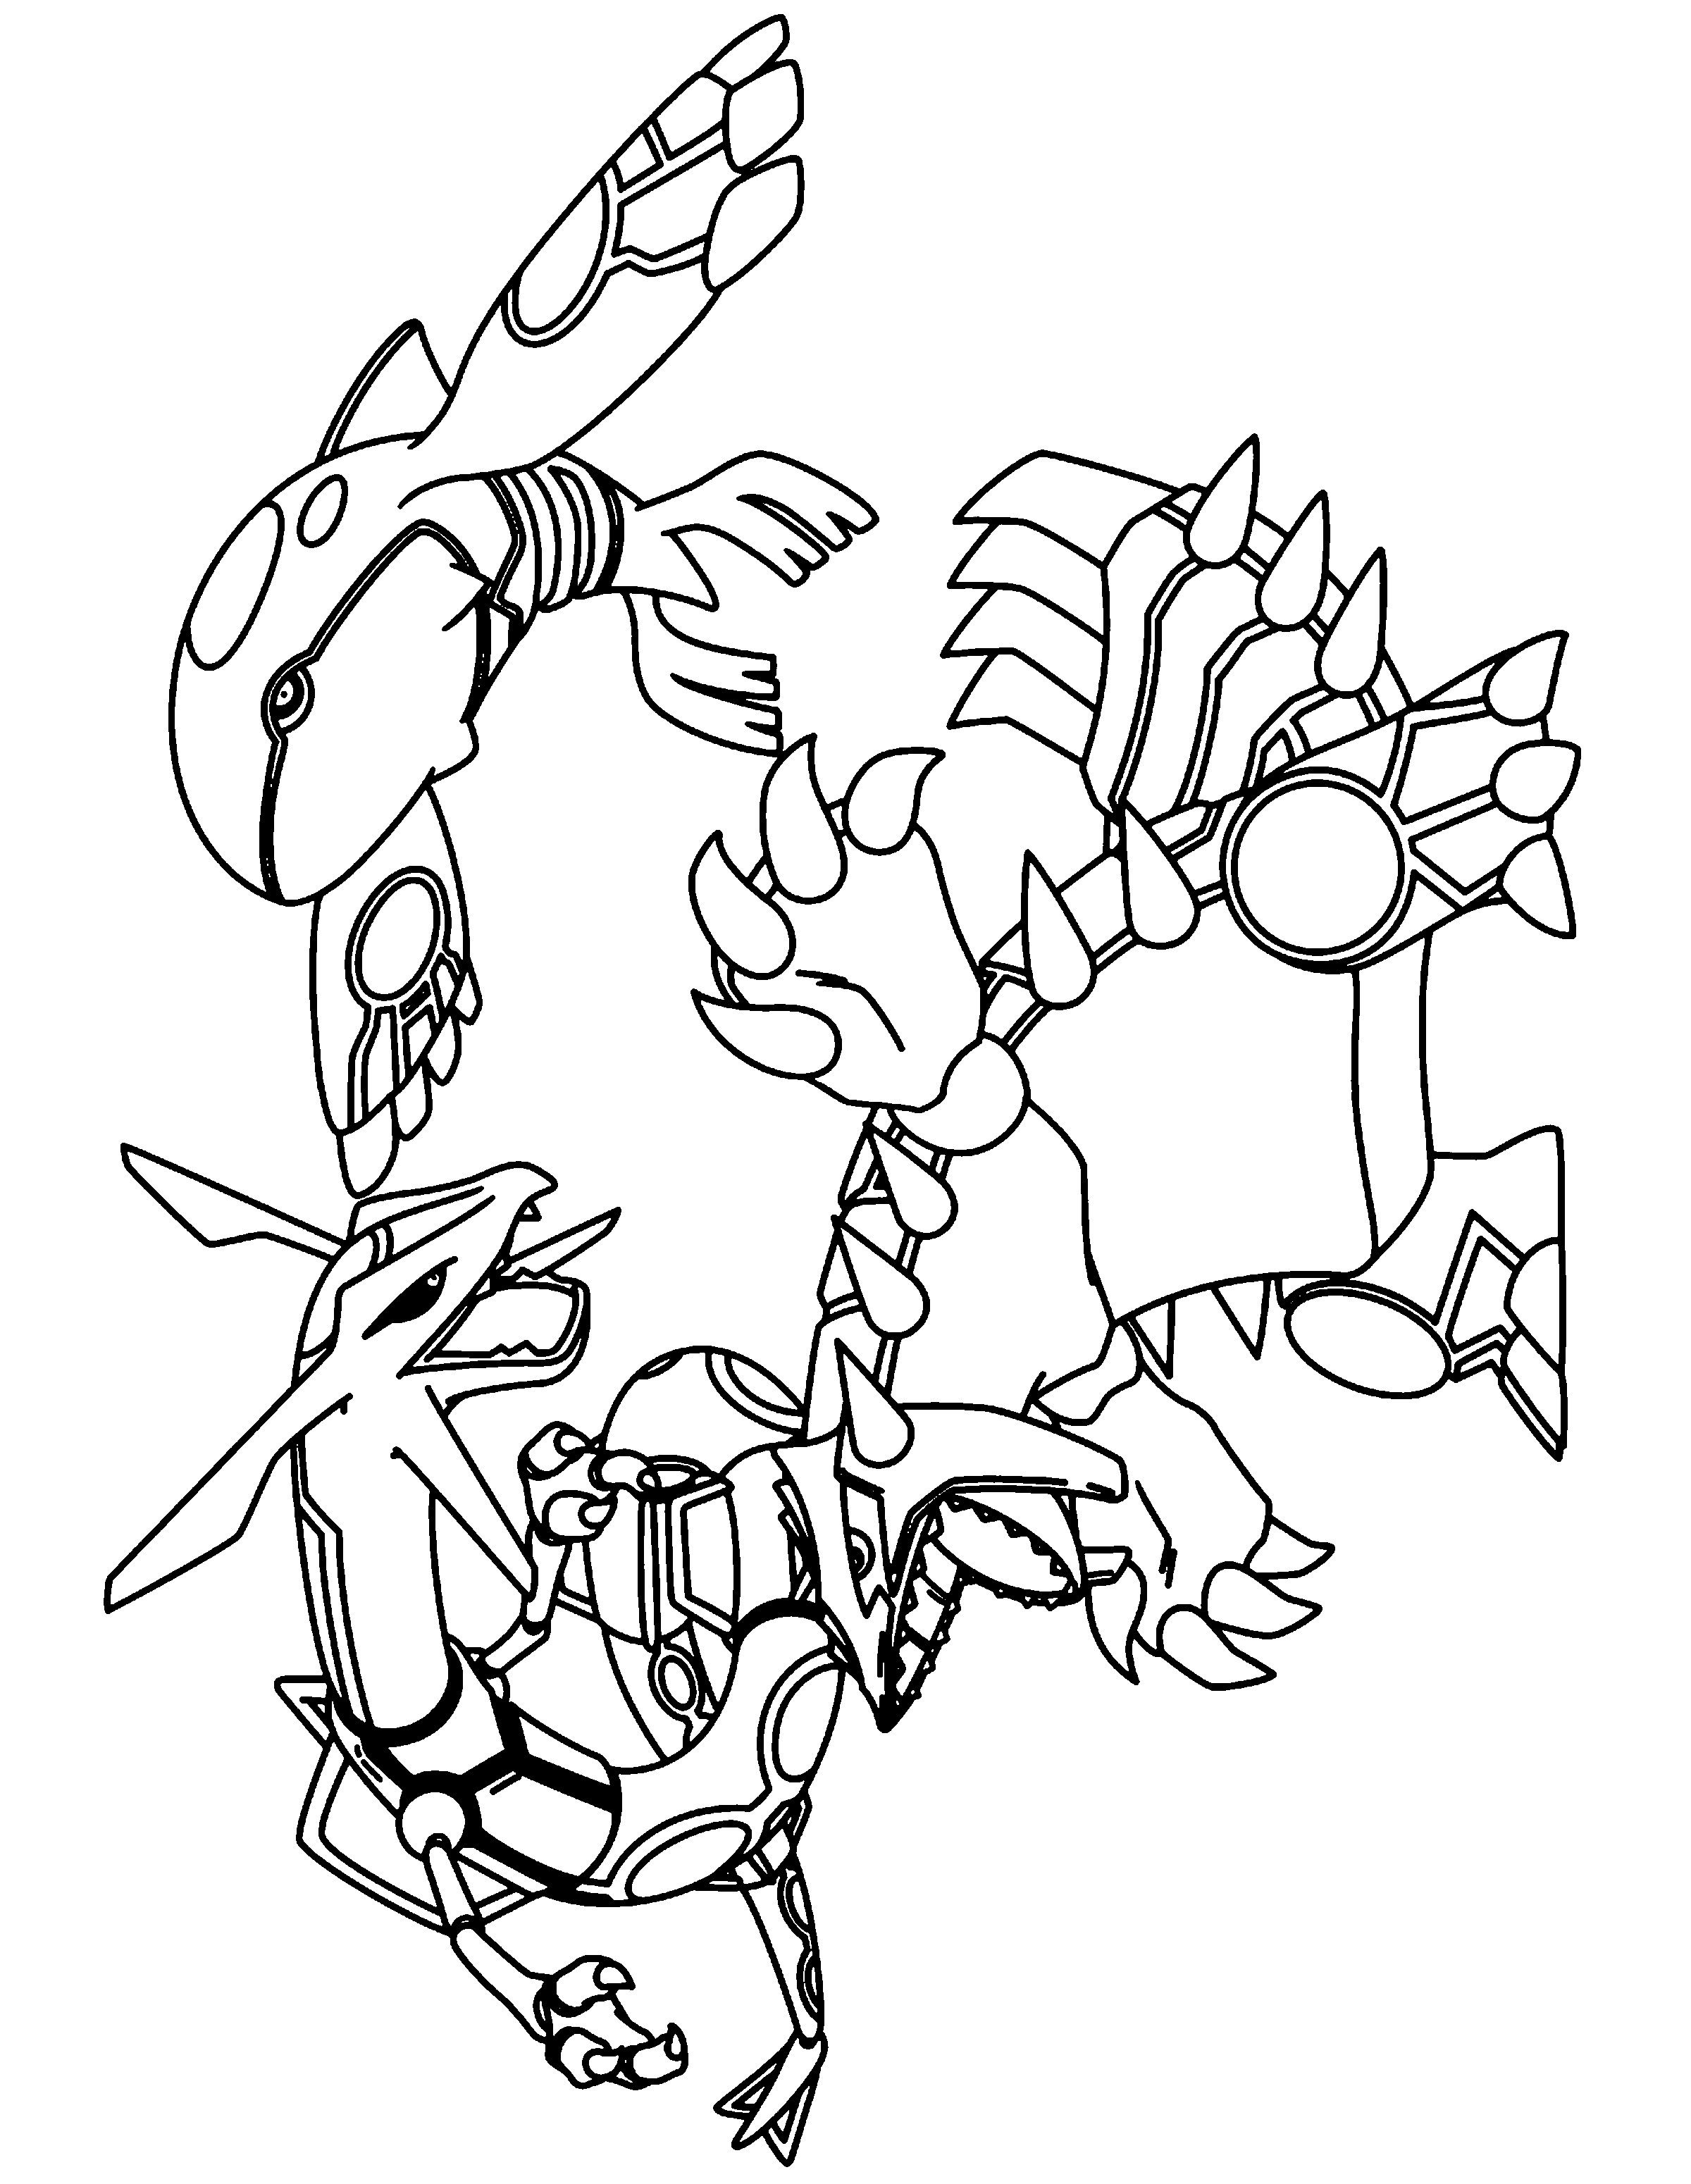 Legendary Pokemon Pictures to Color Through the